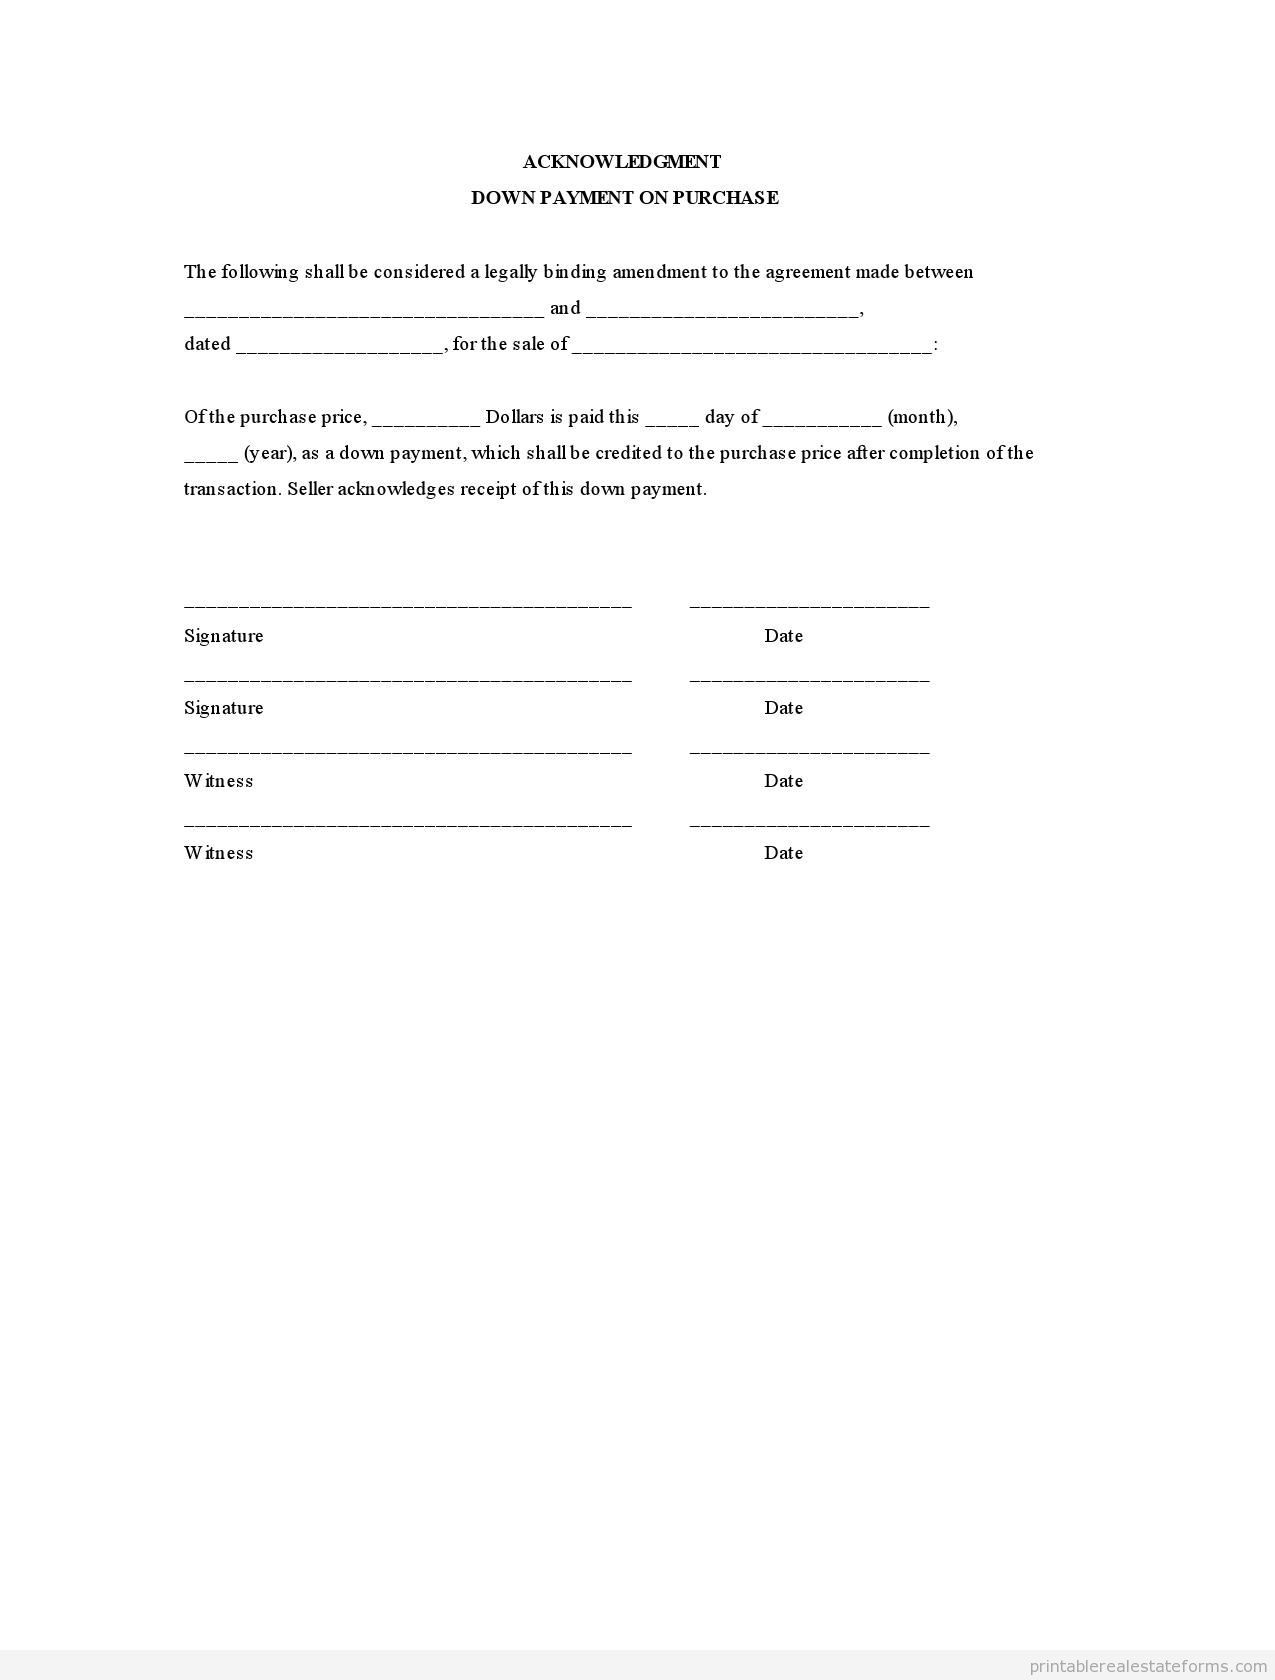 Sample Printable Acknowledgment Down Payment On Purchase Form  Purchase Receipt Template Free